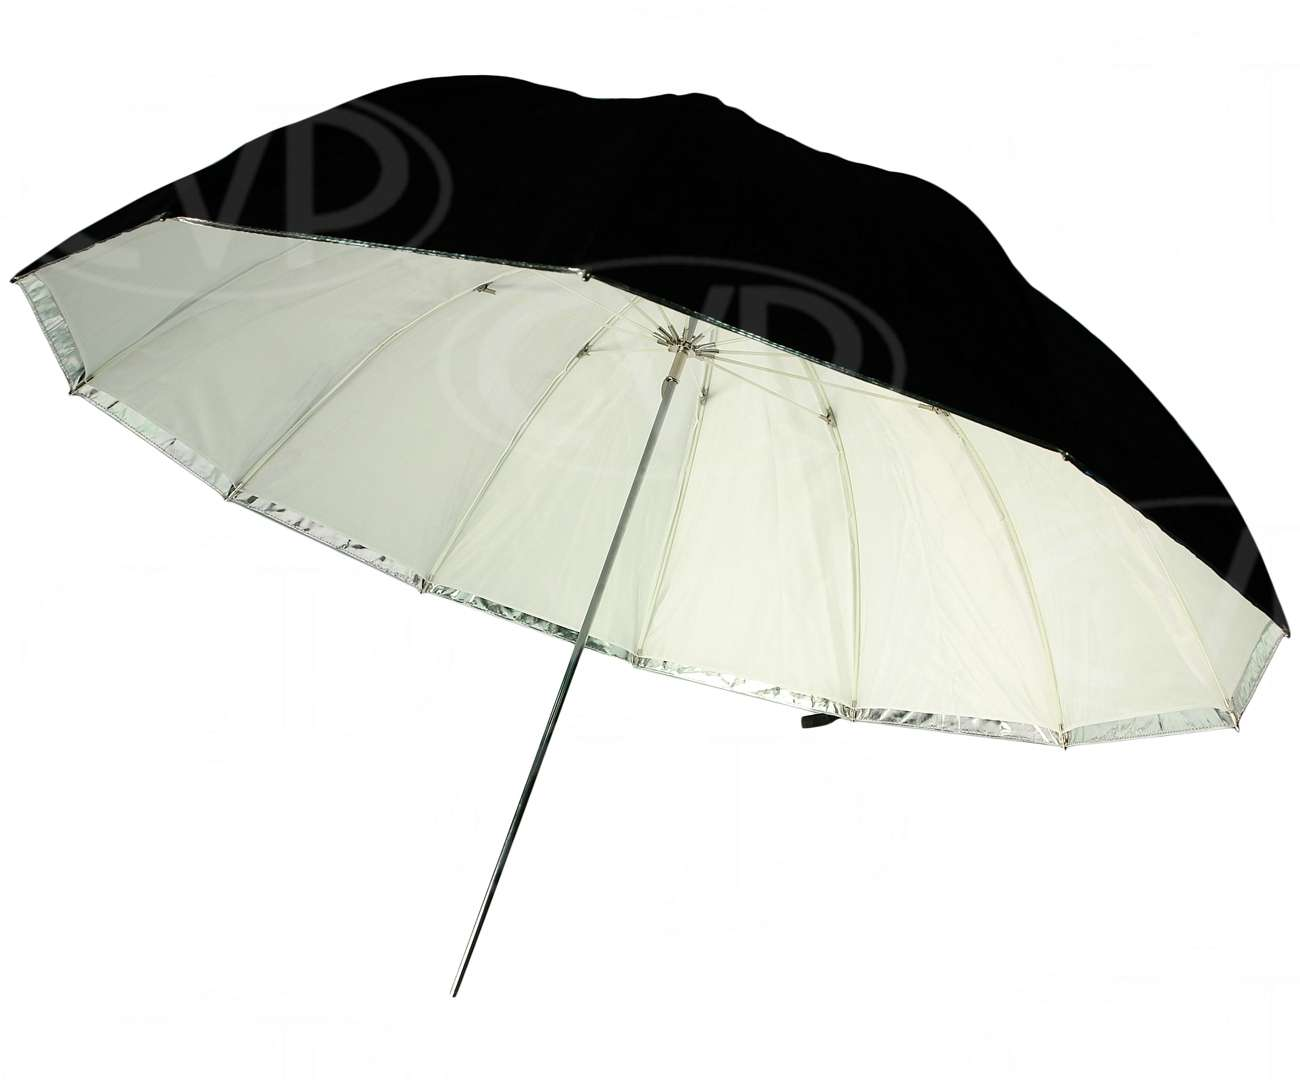 Gekko 64-inch Black/Silver and Translucent Jumbo Umbrella (GRU-11)